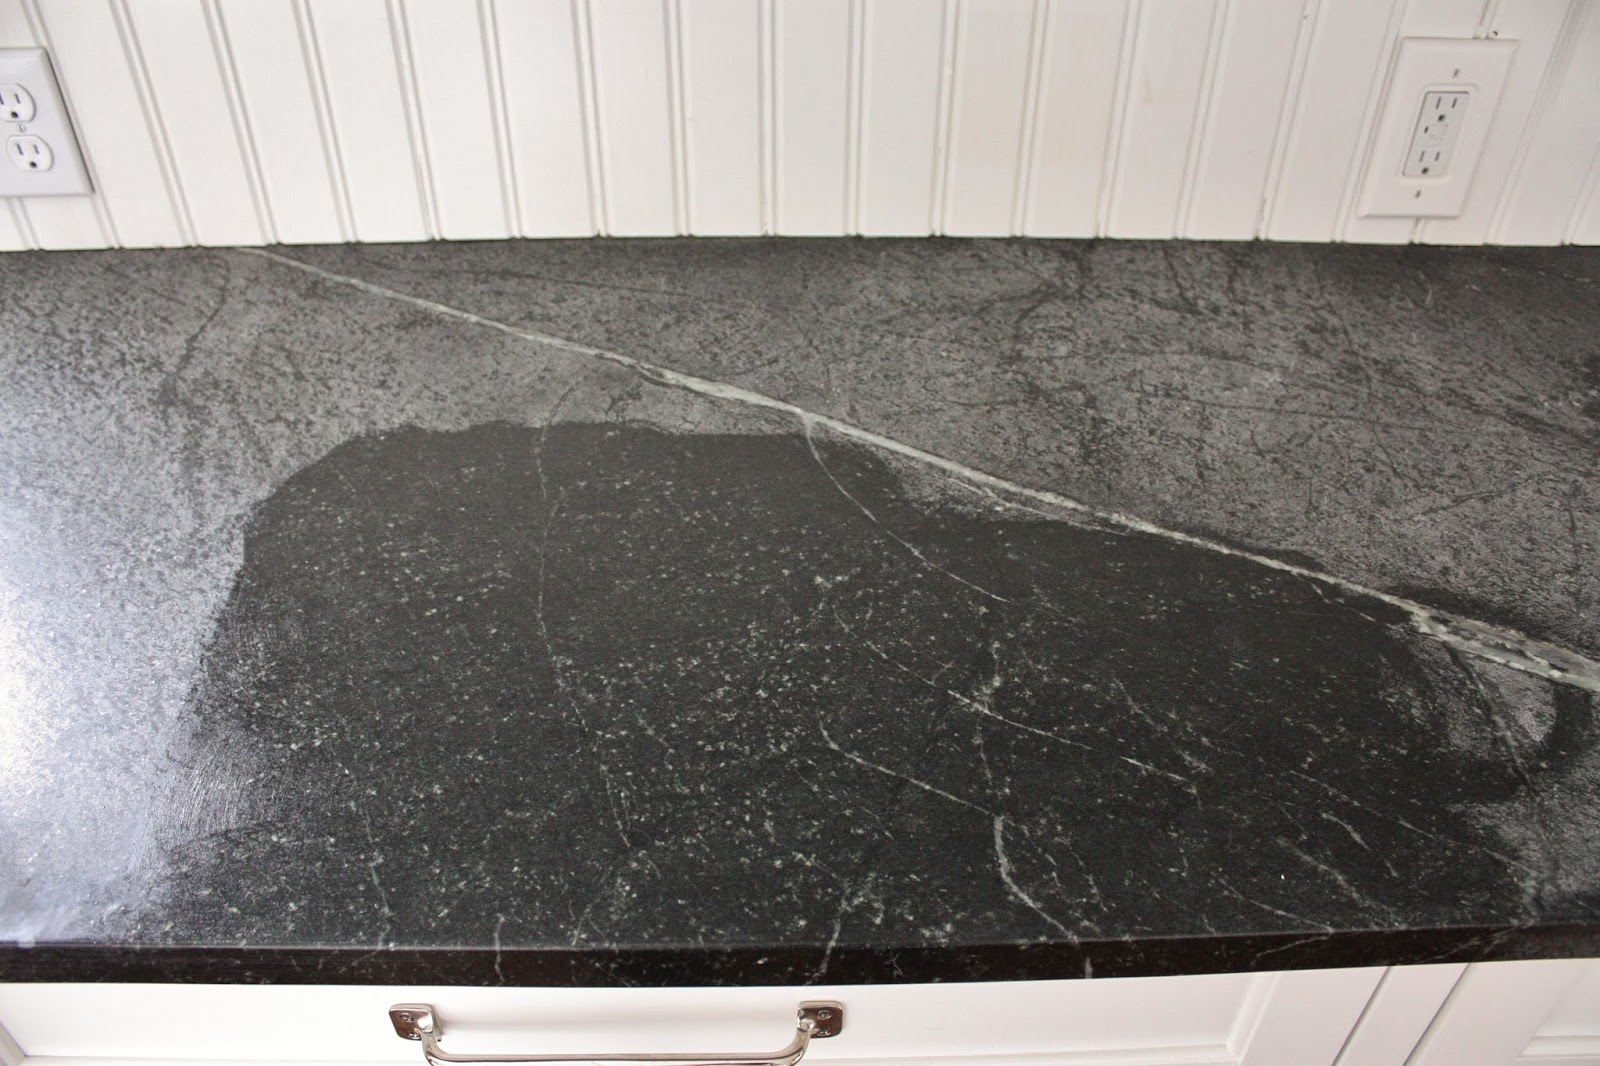 for the of a house: Soapstone... Soapstone Countertops Durability on laminate countertops durability, corian countertops durability, quartzite countertops durability, tile countertops durability, butcher block countertops durability, stainless steel countertops durability, dolomite countertops durability, recycled glass countertops durability, limestone countertops durability, concrete countertops durability, solid surface countertops durability,